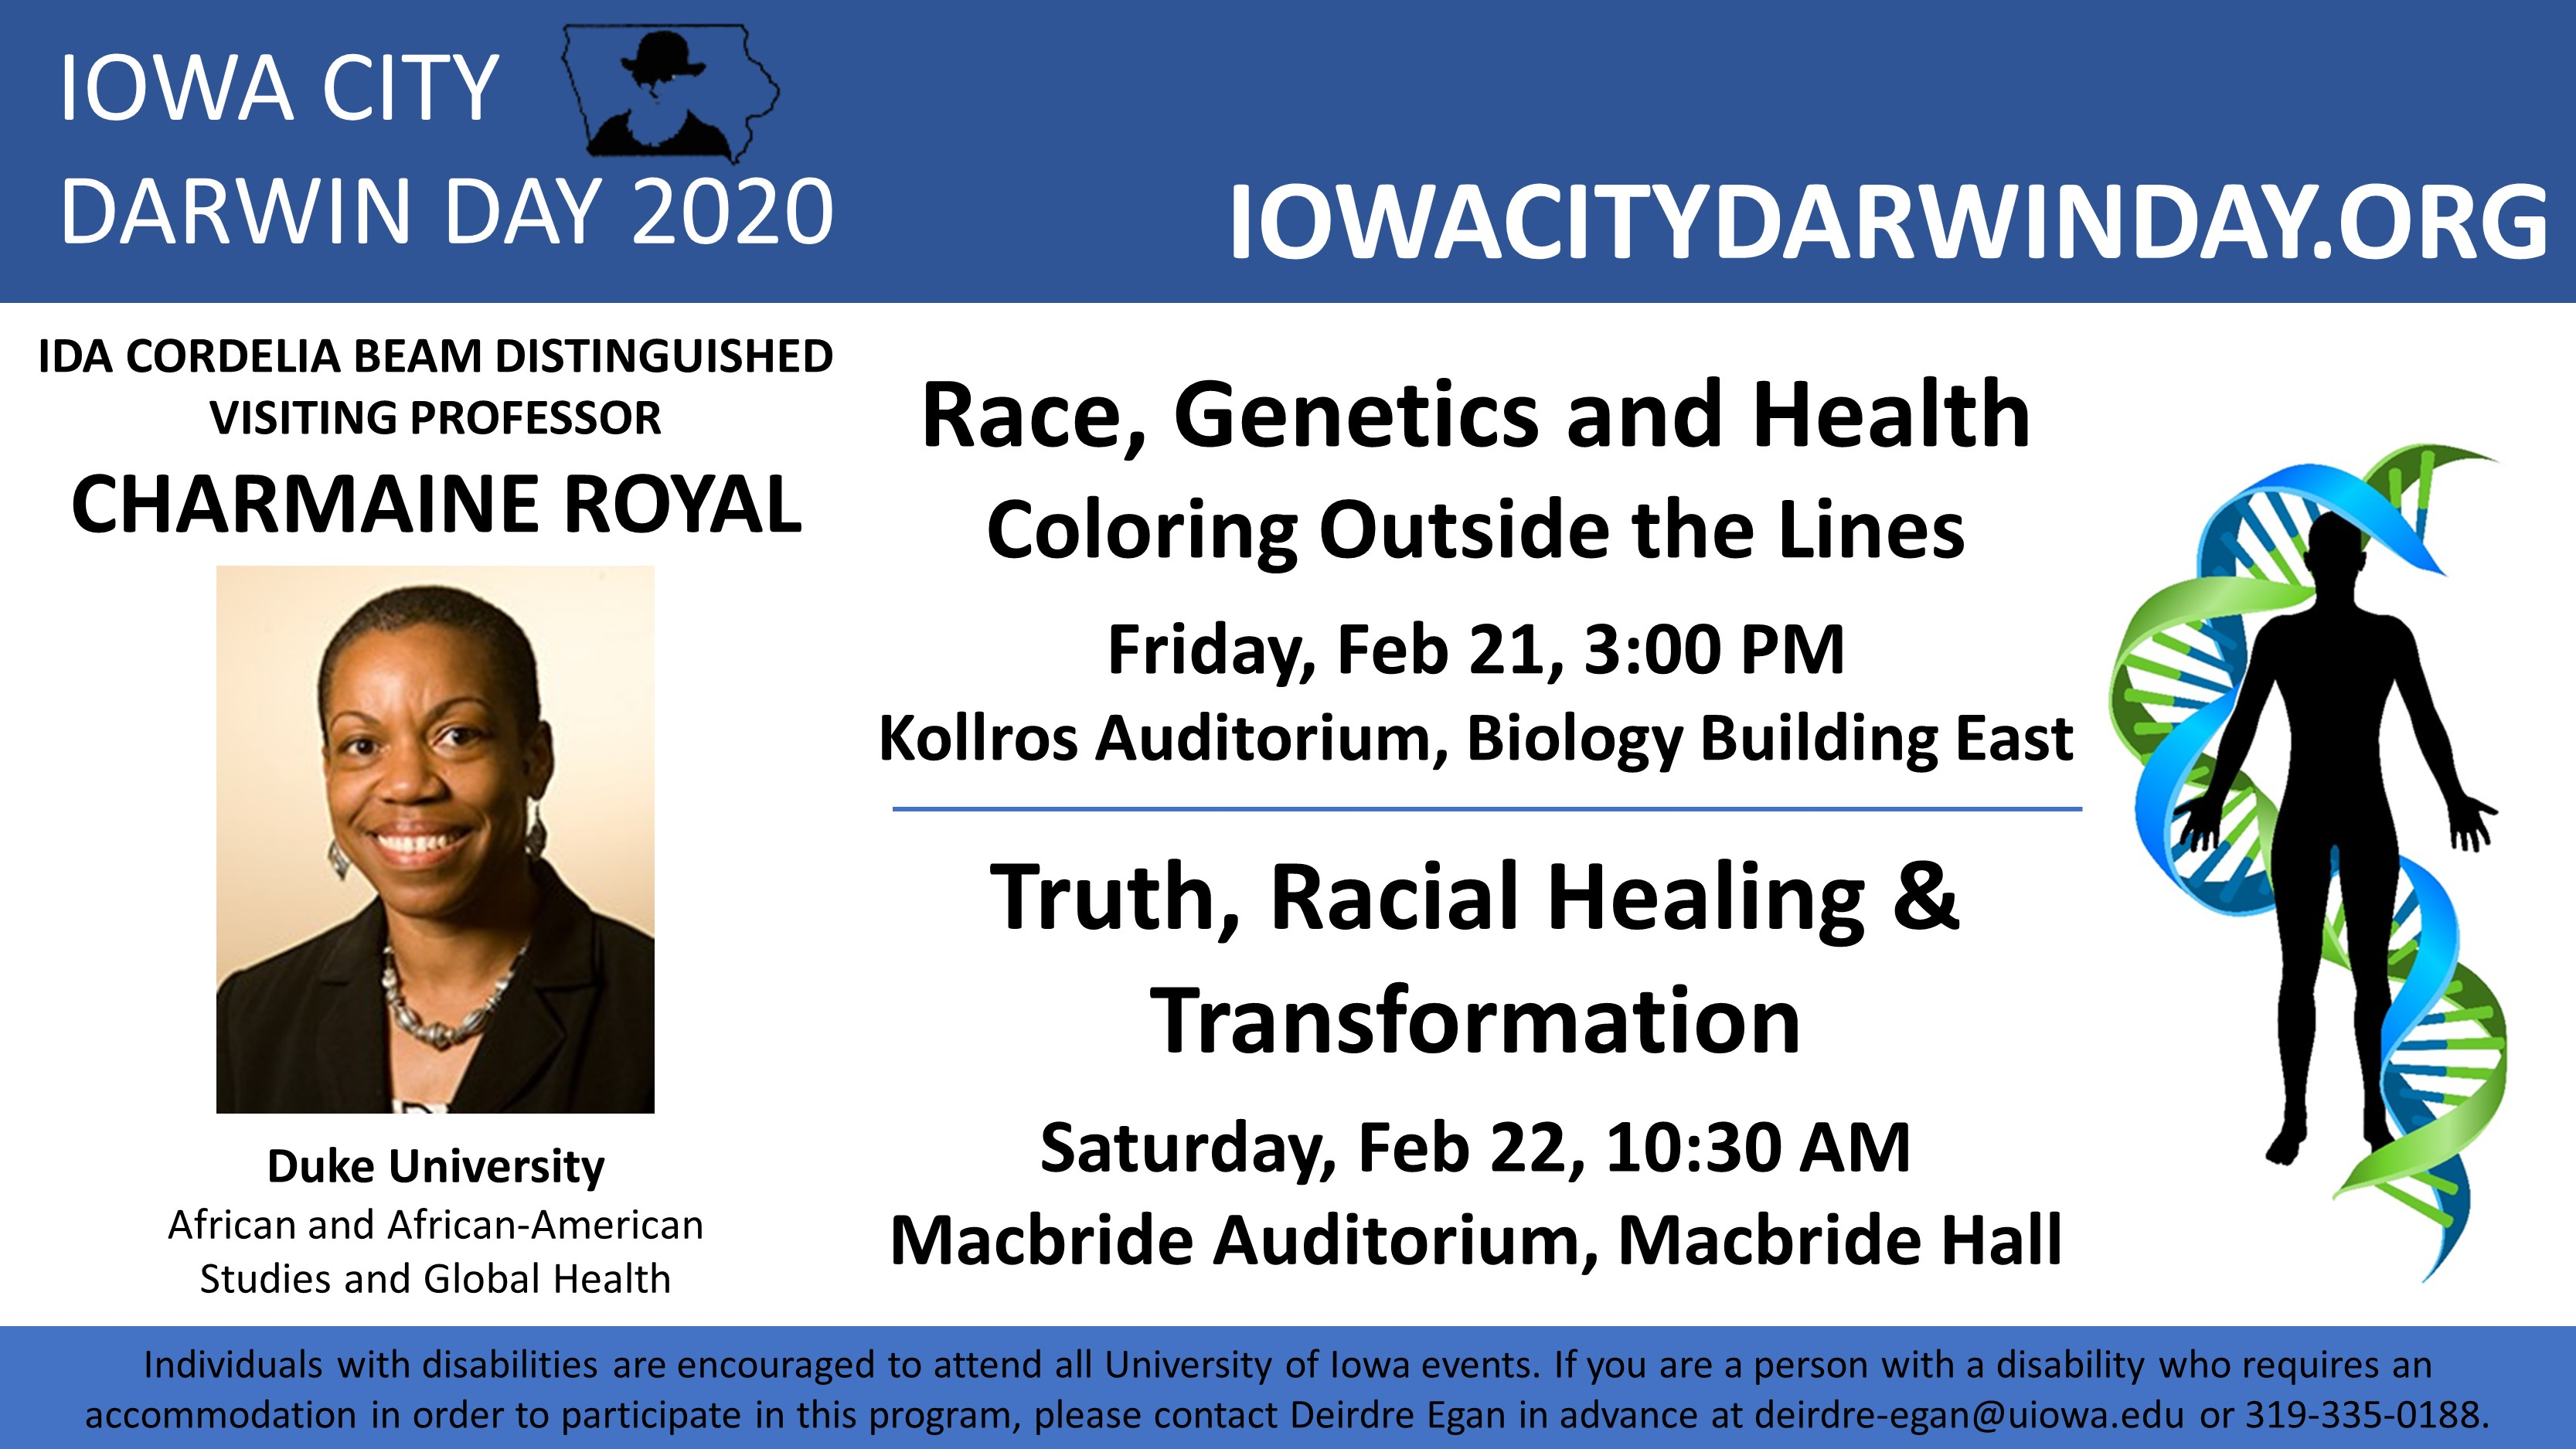 Charmaine Royal - Race, Genetics and Health: Coloring Outside the Lines promotional image